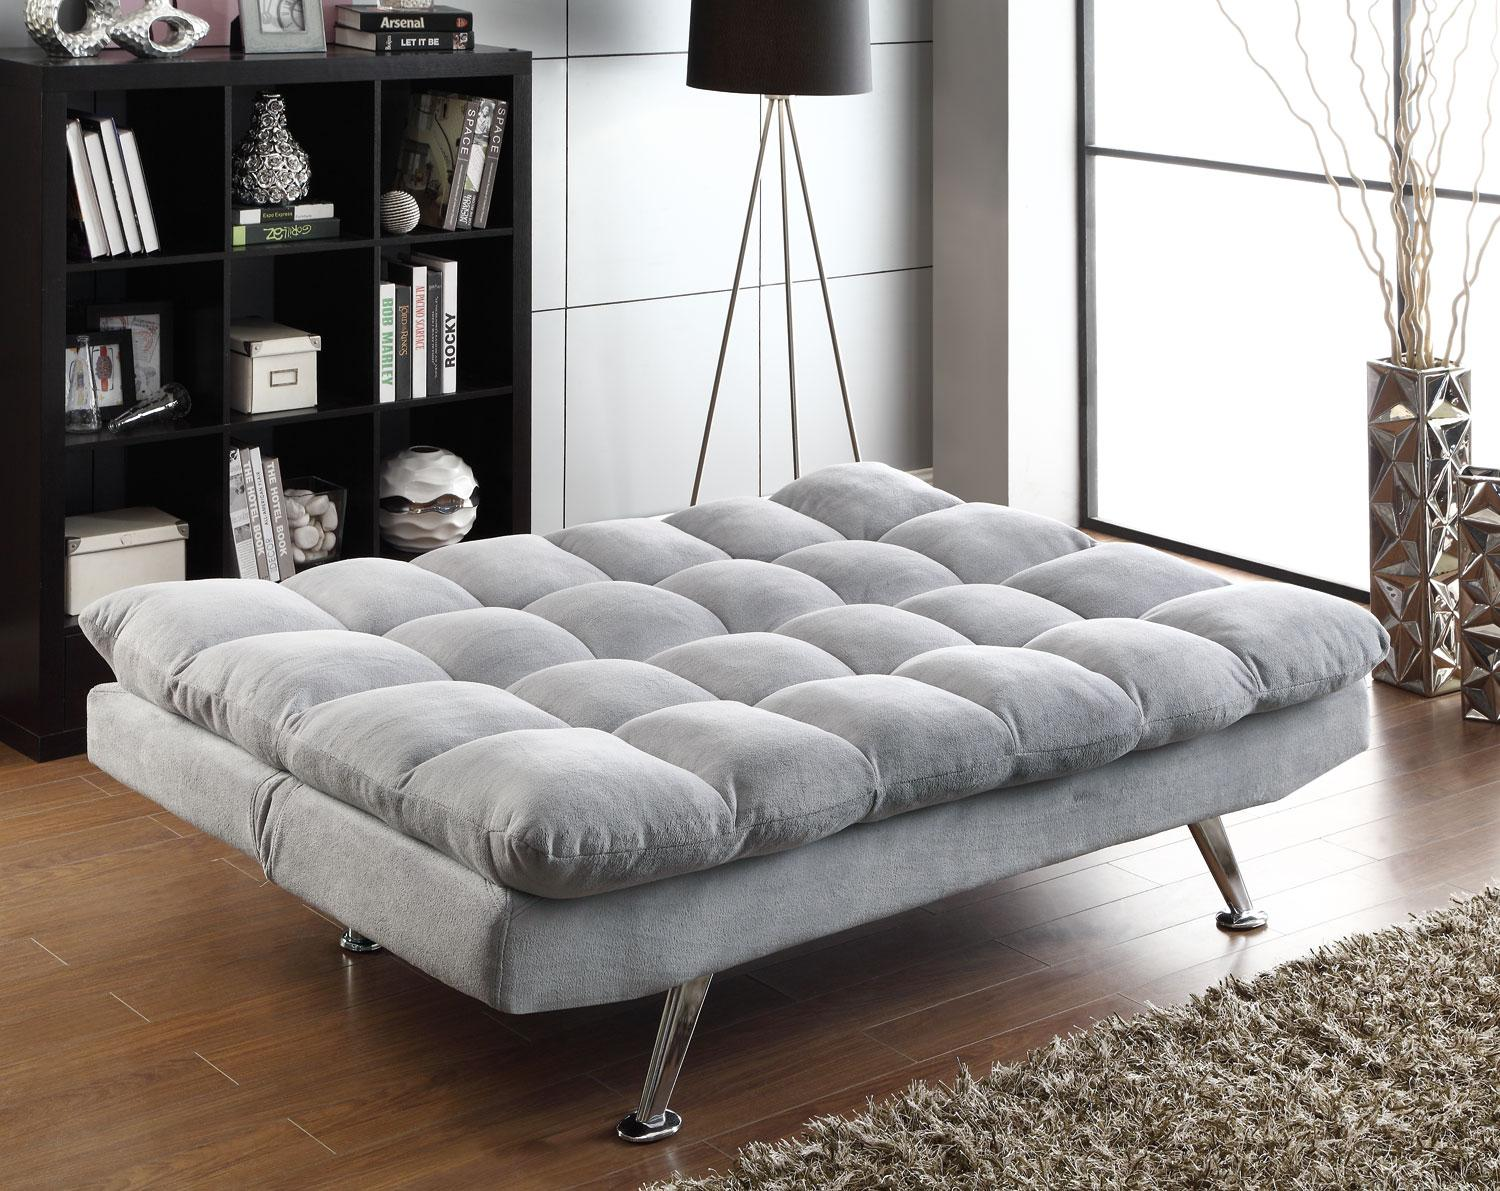 contemporary futon sofa bed sleeper model 500775 0TEZEAAN